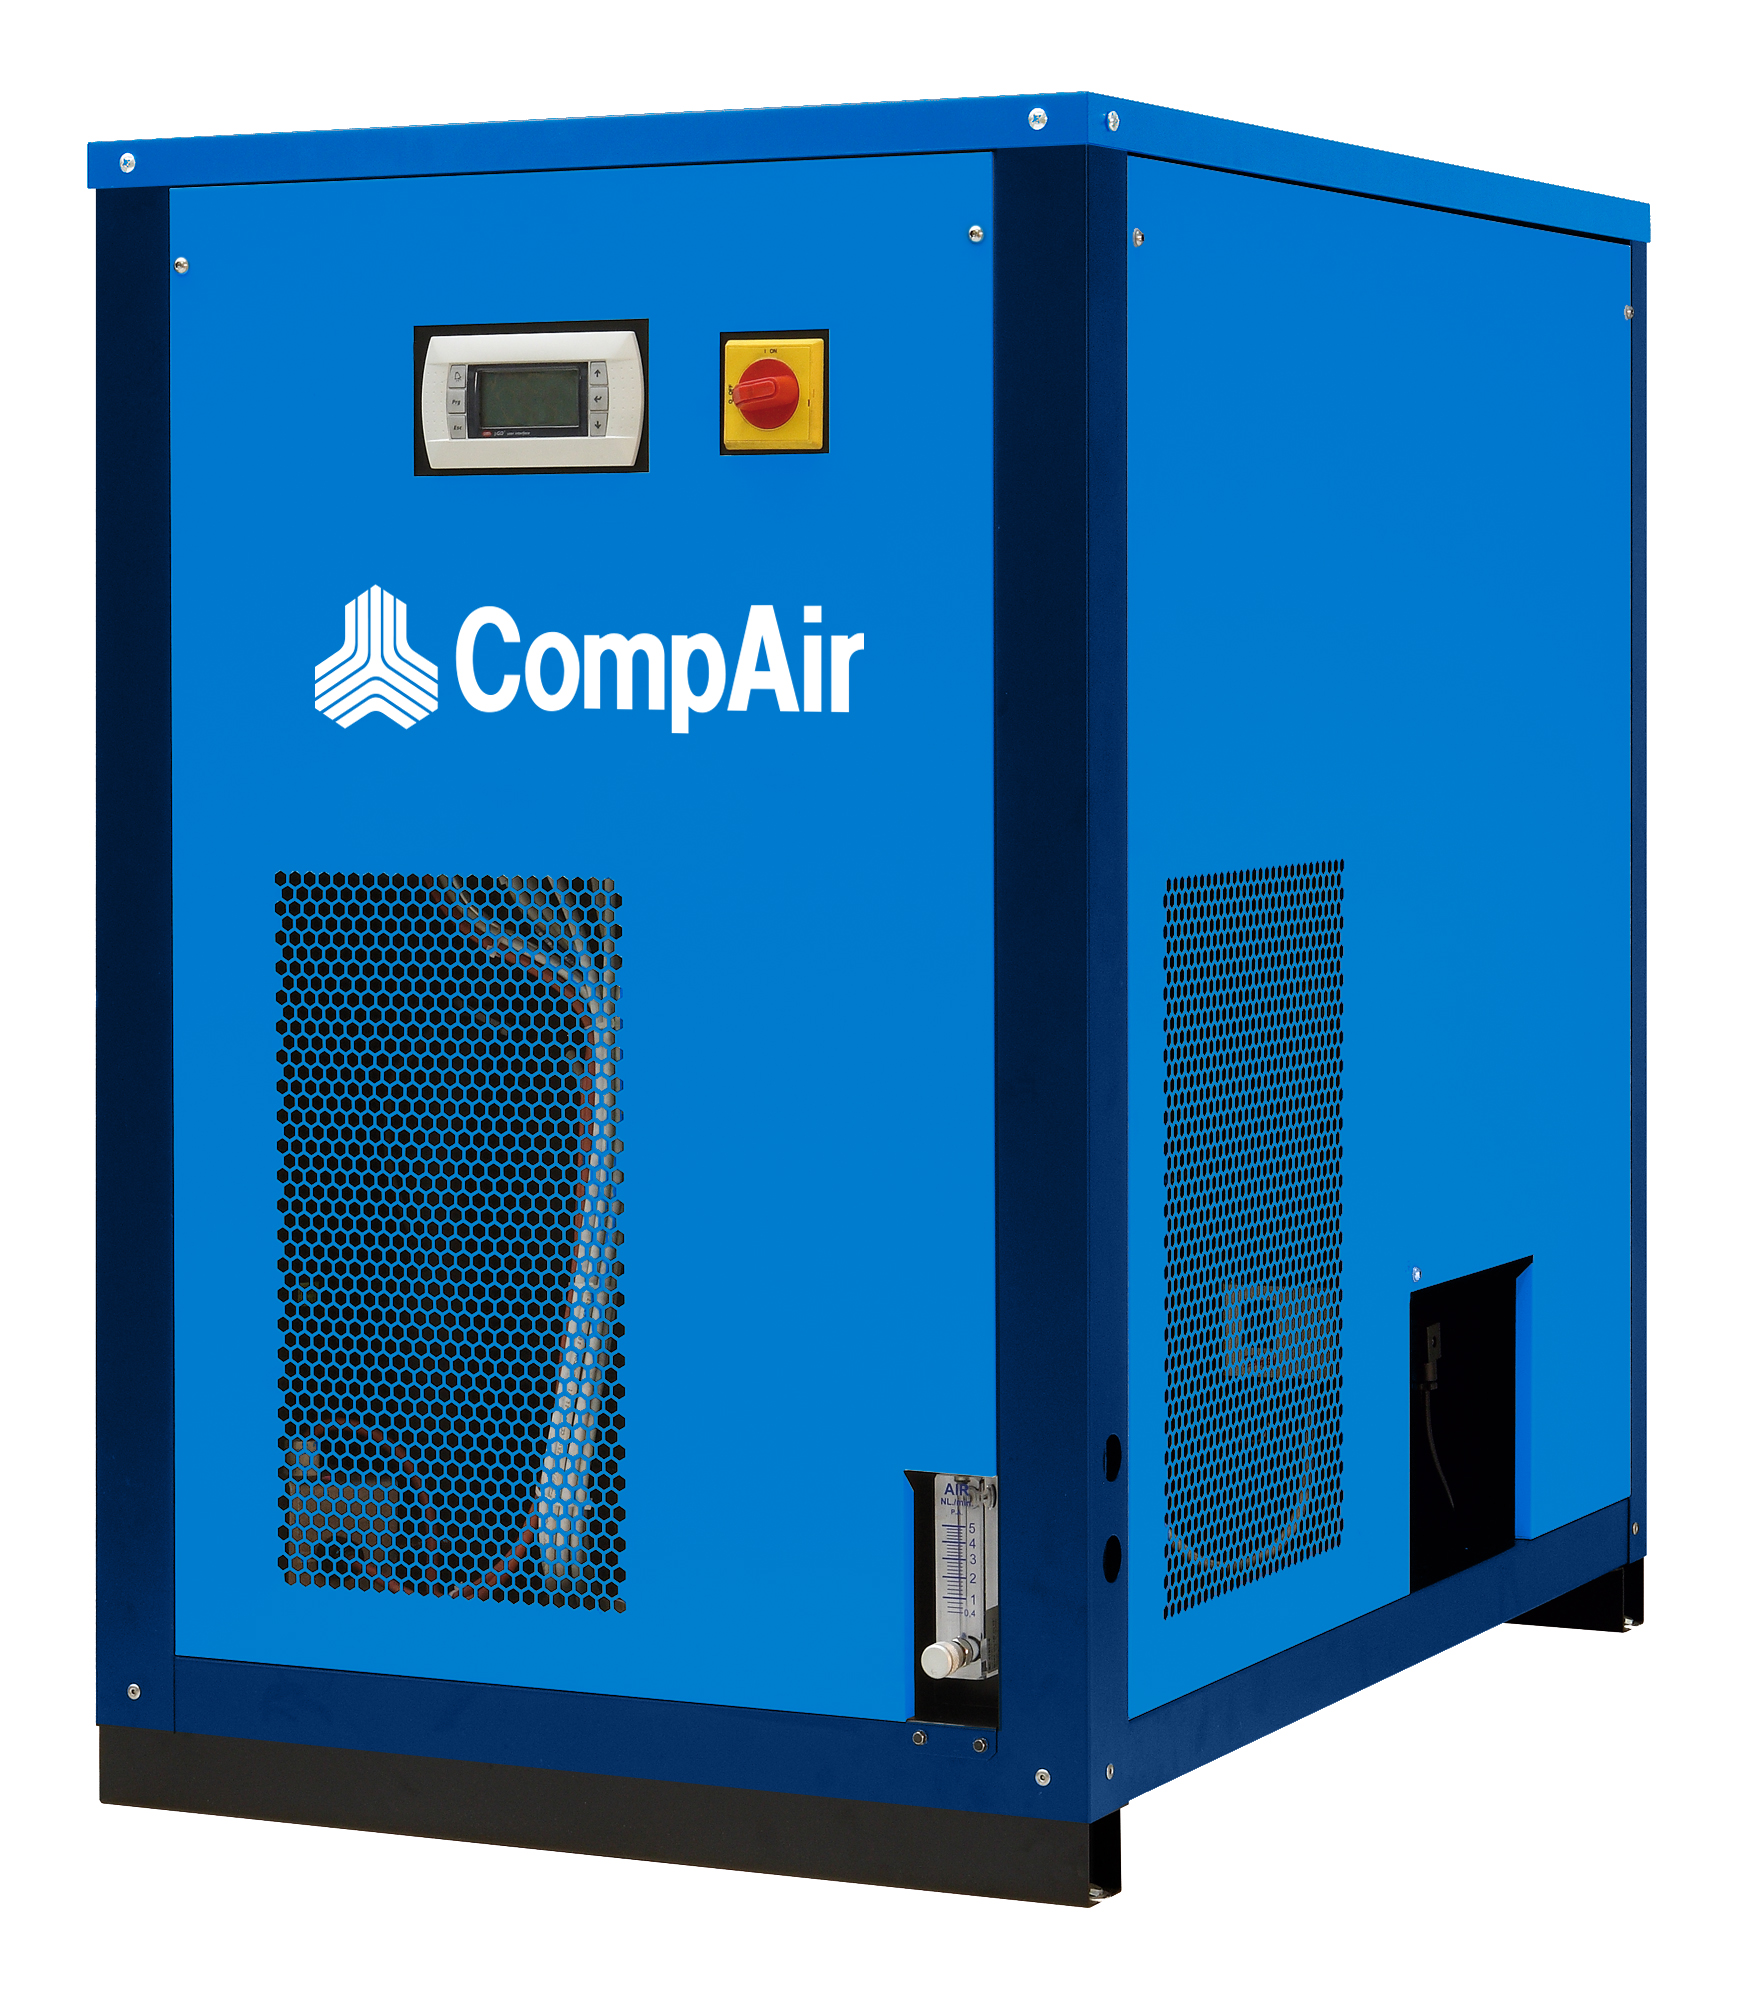 CompAir Dual Technology Dryer Cuts Energy